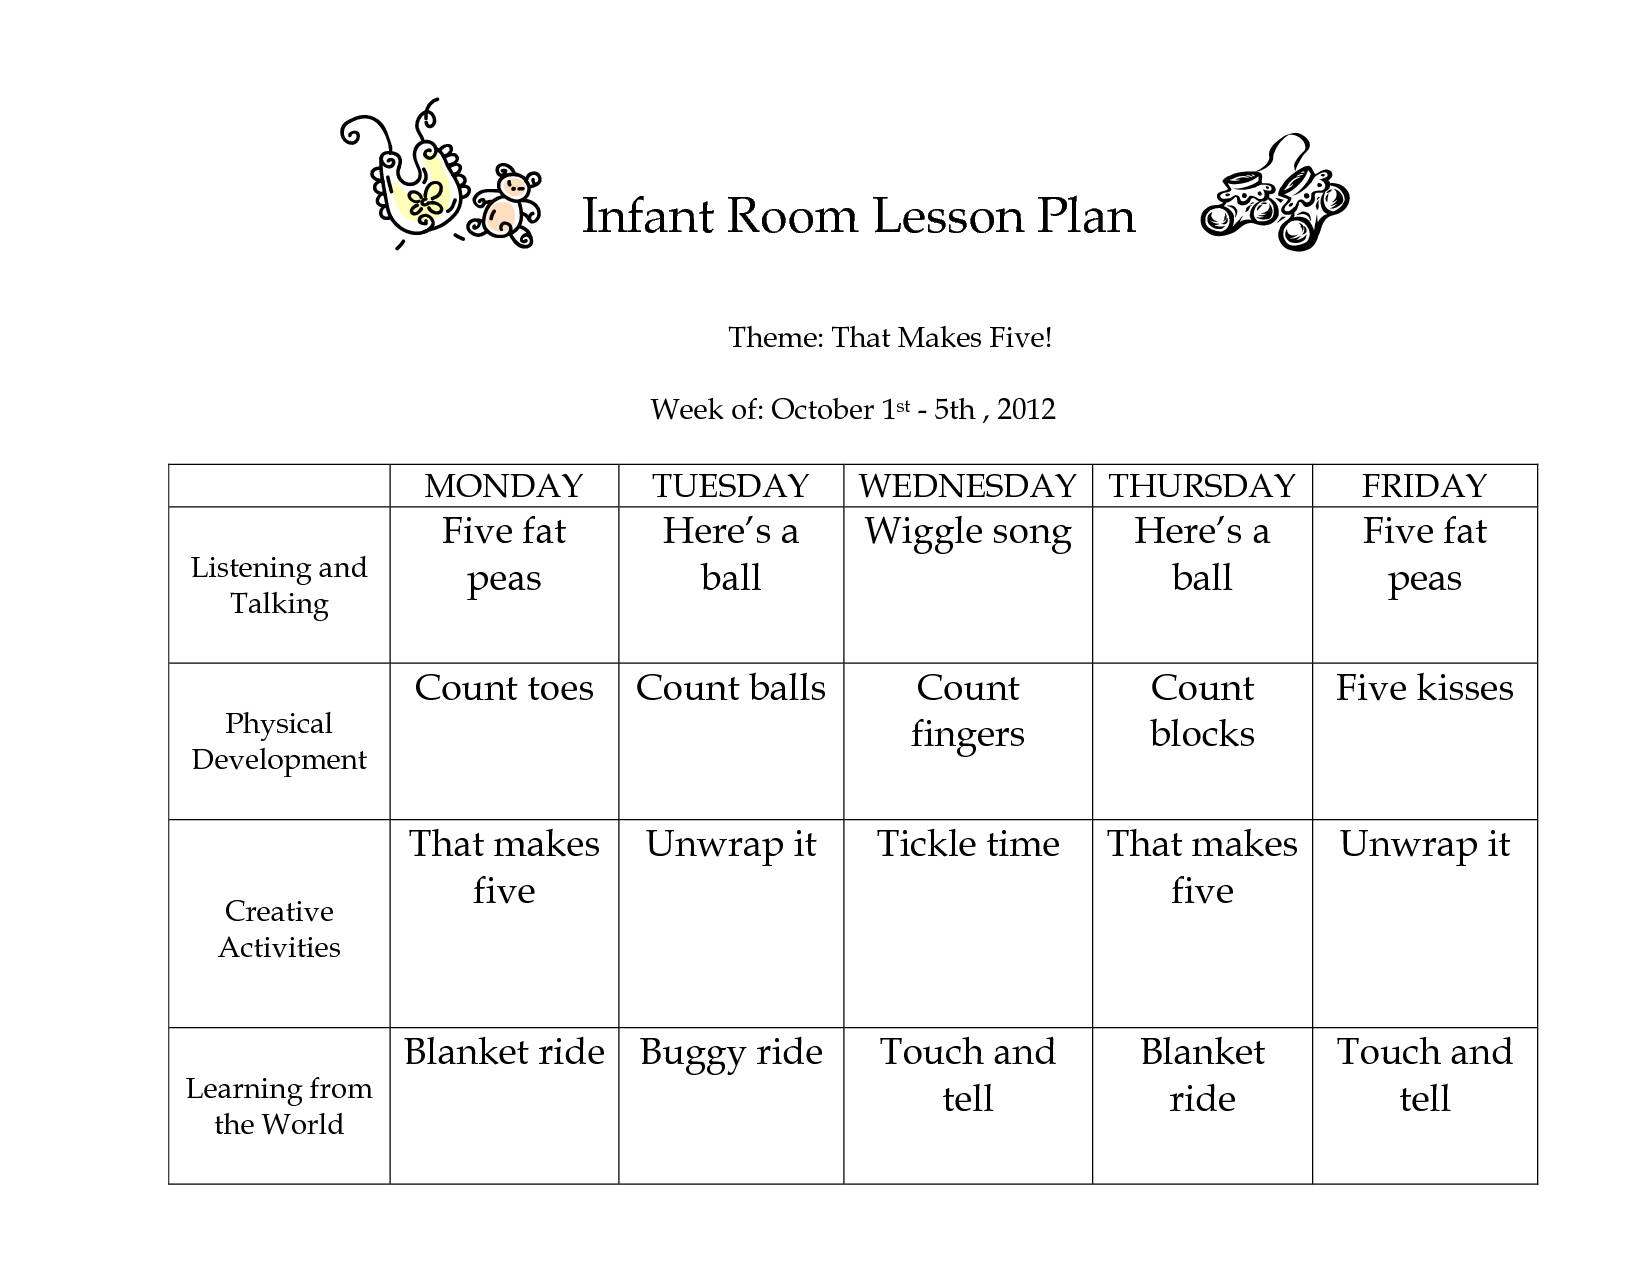 Infant Room Lesson Plan Theme That Makes Five Week Of Classroom - Creative curriculum lesson plan template for infants and toddlers